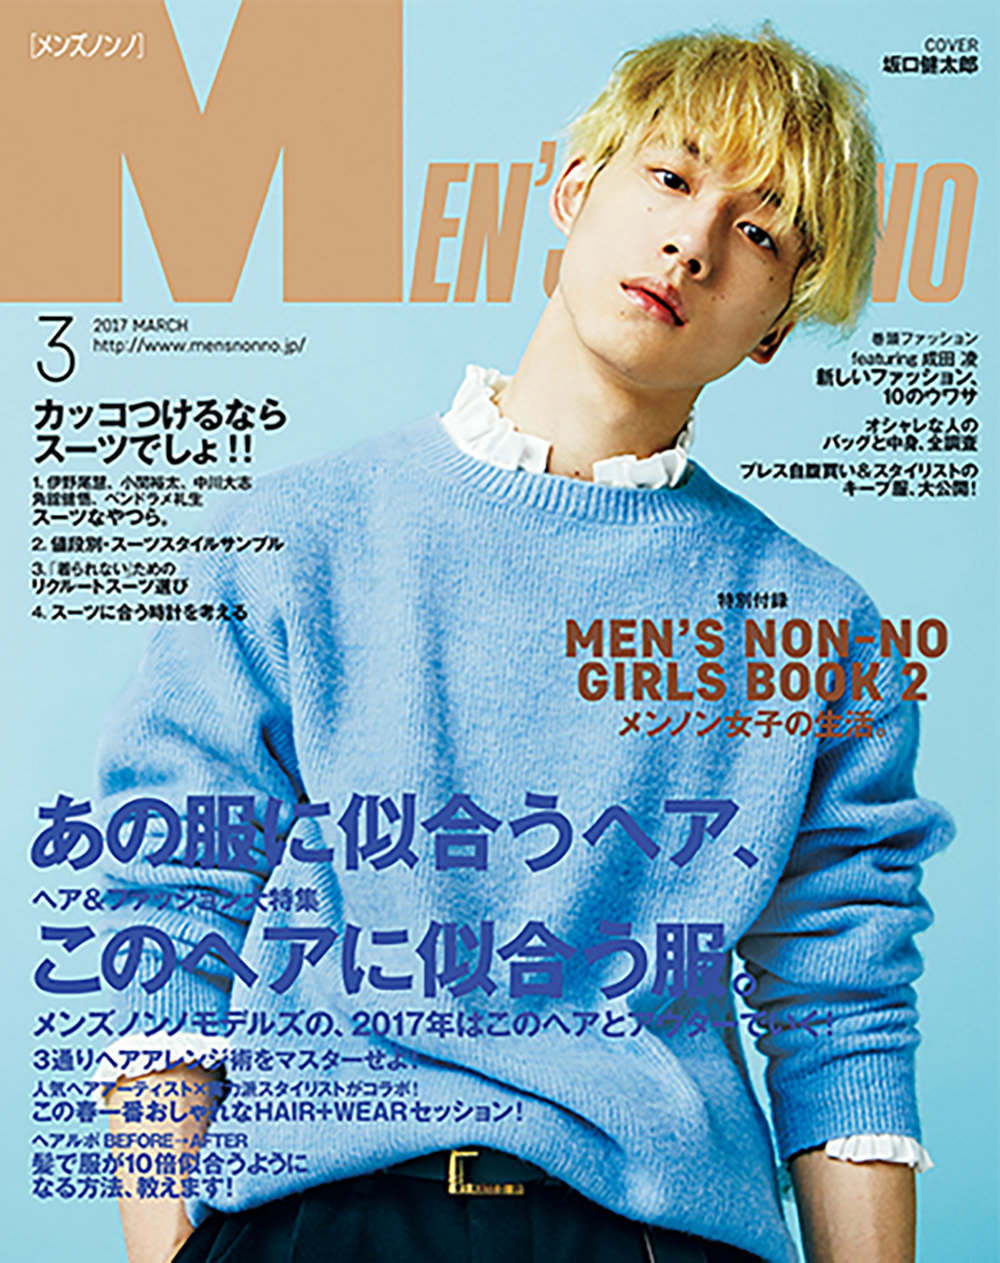 MEN'S NON-NO Mar 2017